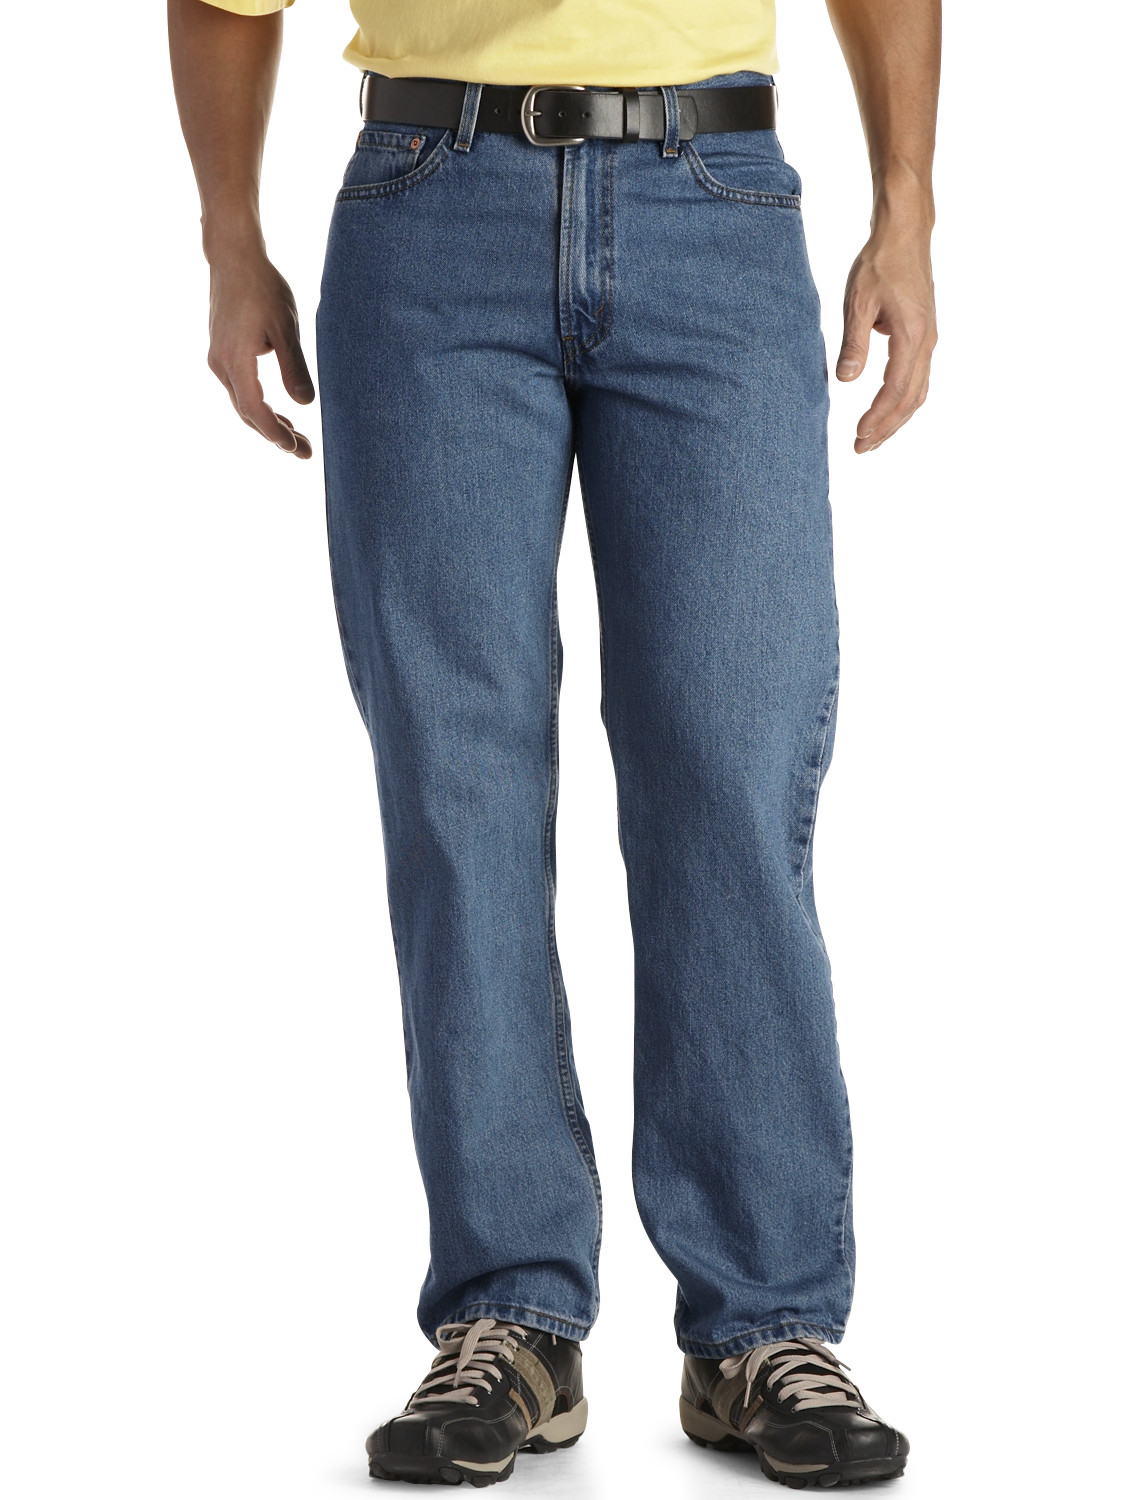 browse jeans lee clothiers comforter comfort jos pants waist men main slacks s a thumbnail bank trousers